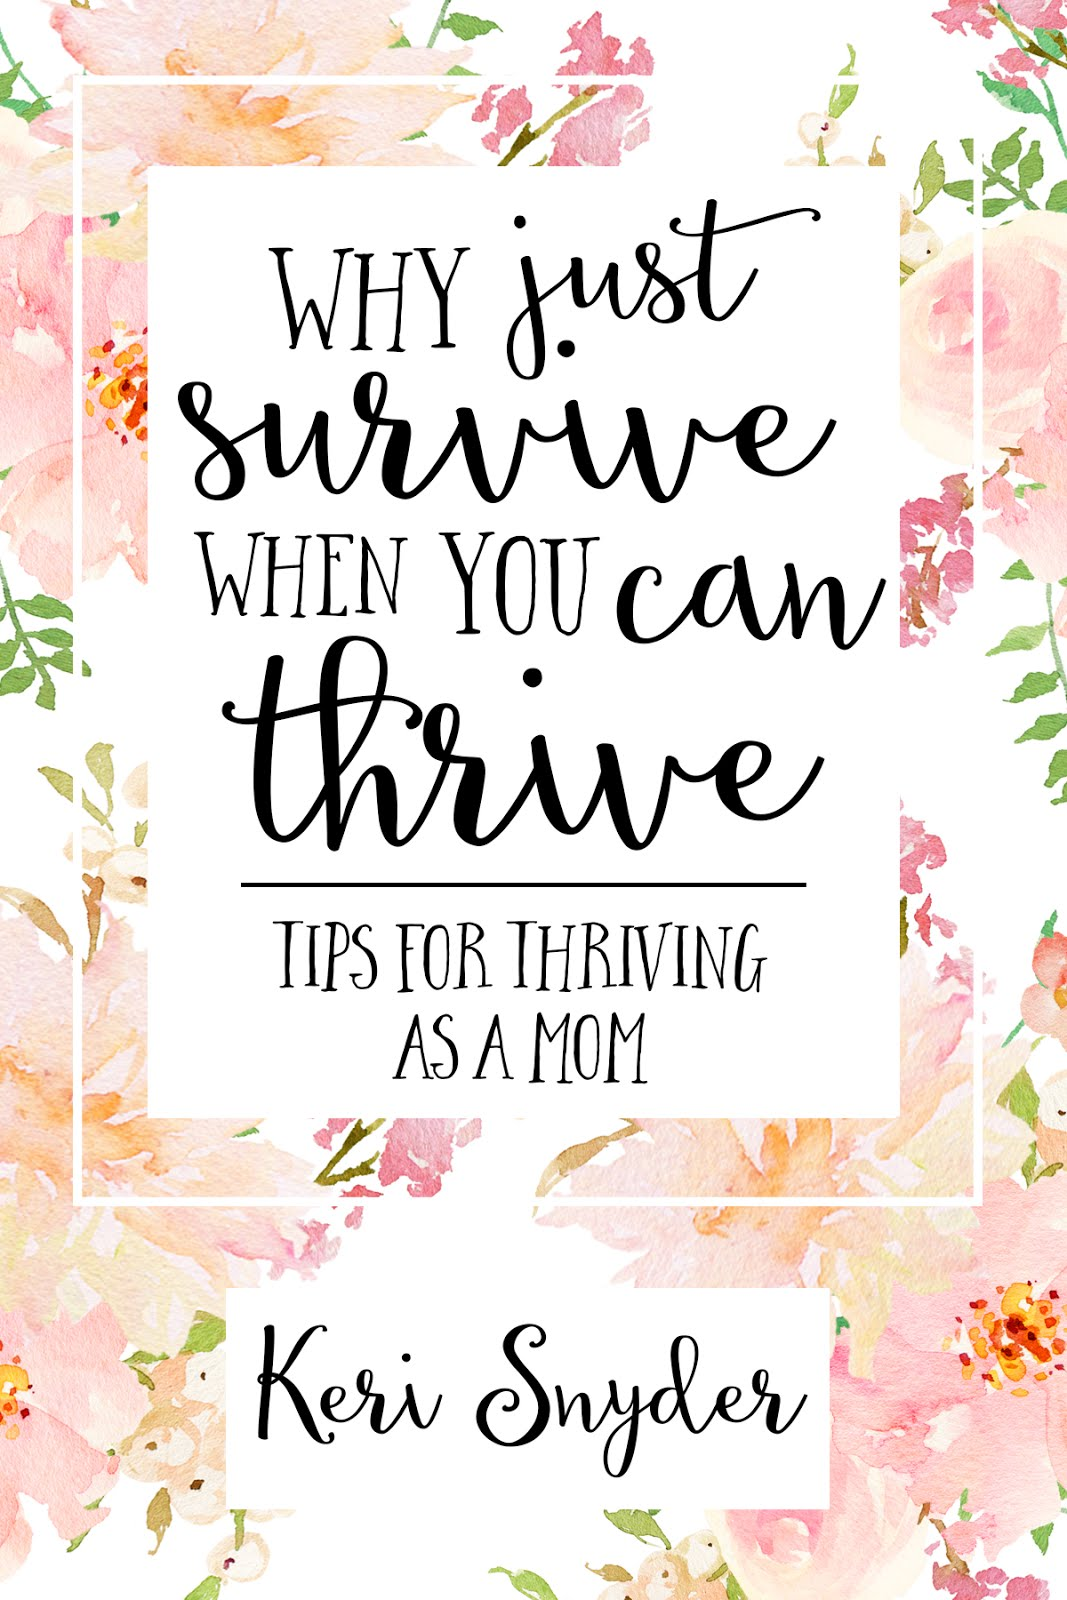 Recommended Reading: Why Just Survive When You Can Thrive